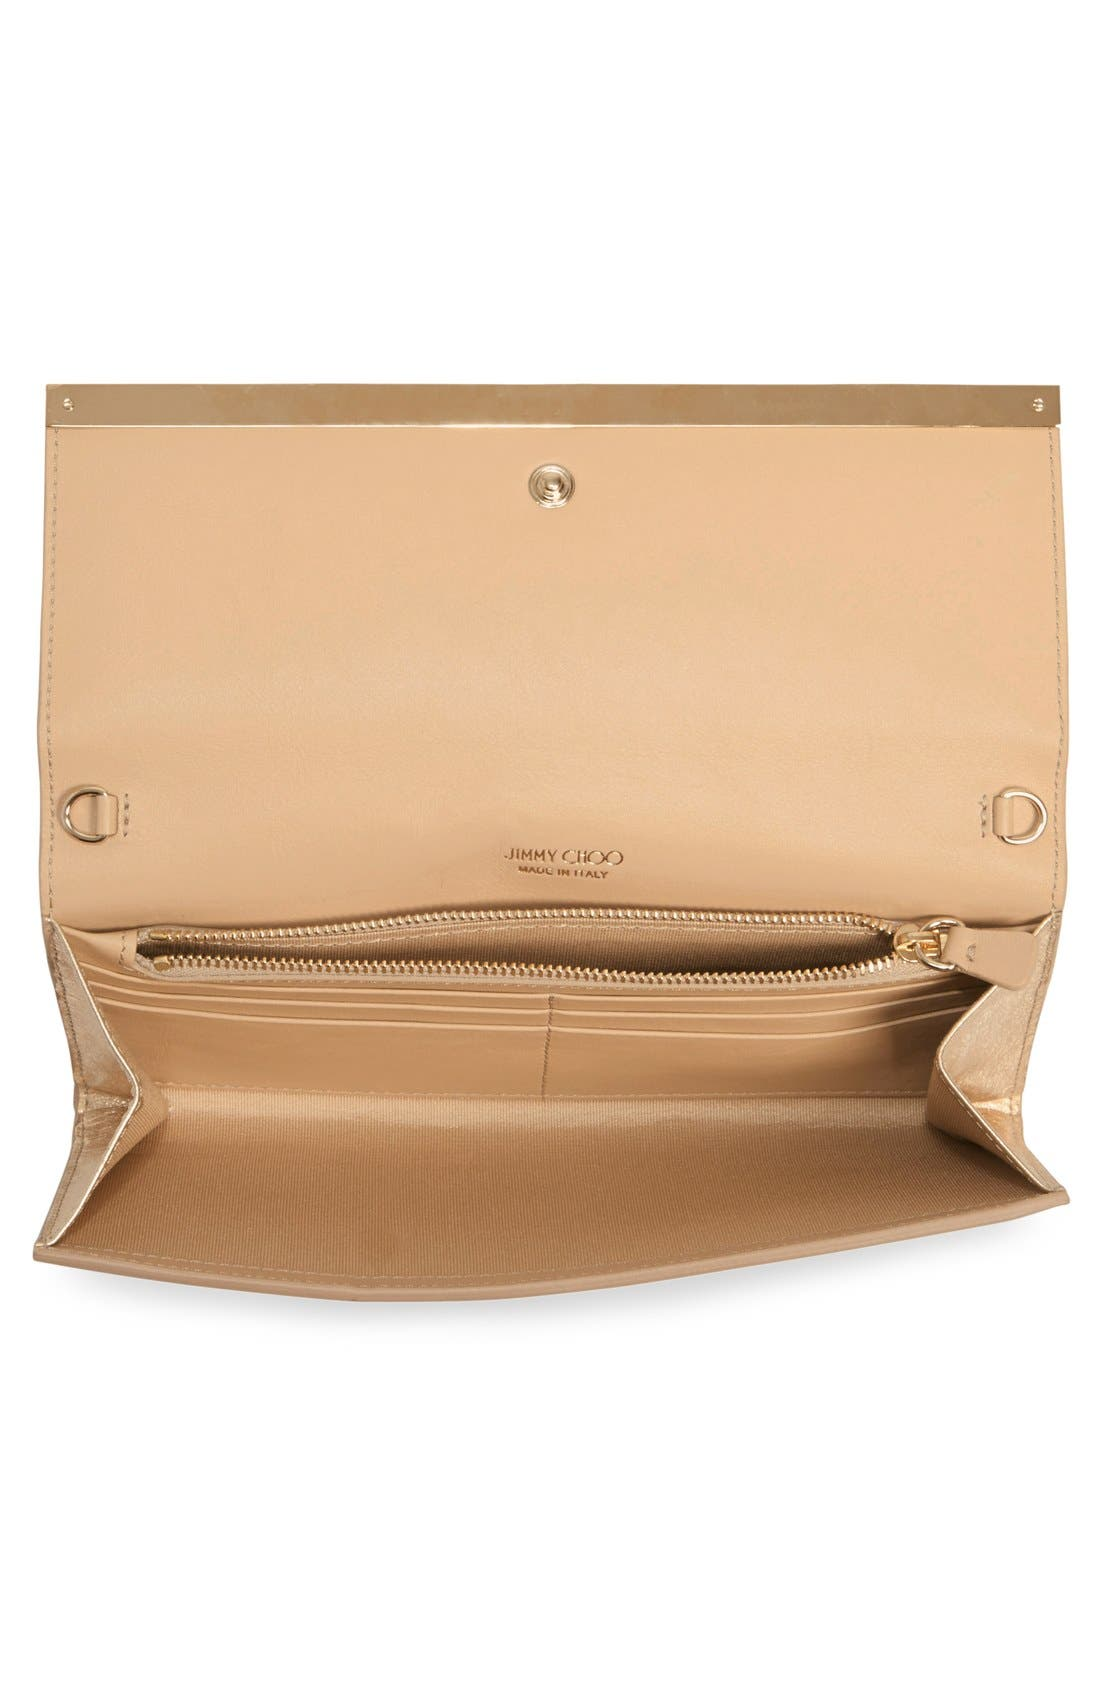 'Milla' Etched Metallic Spazzolato Leather Flap Clutch,                             Alternate thumbnail 3, color,                             Gold